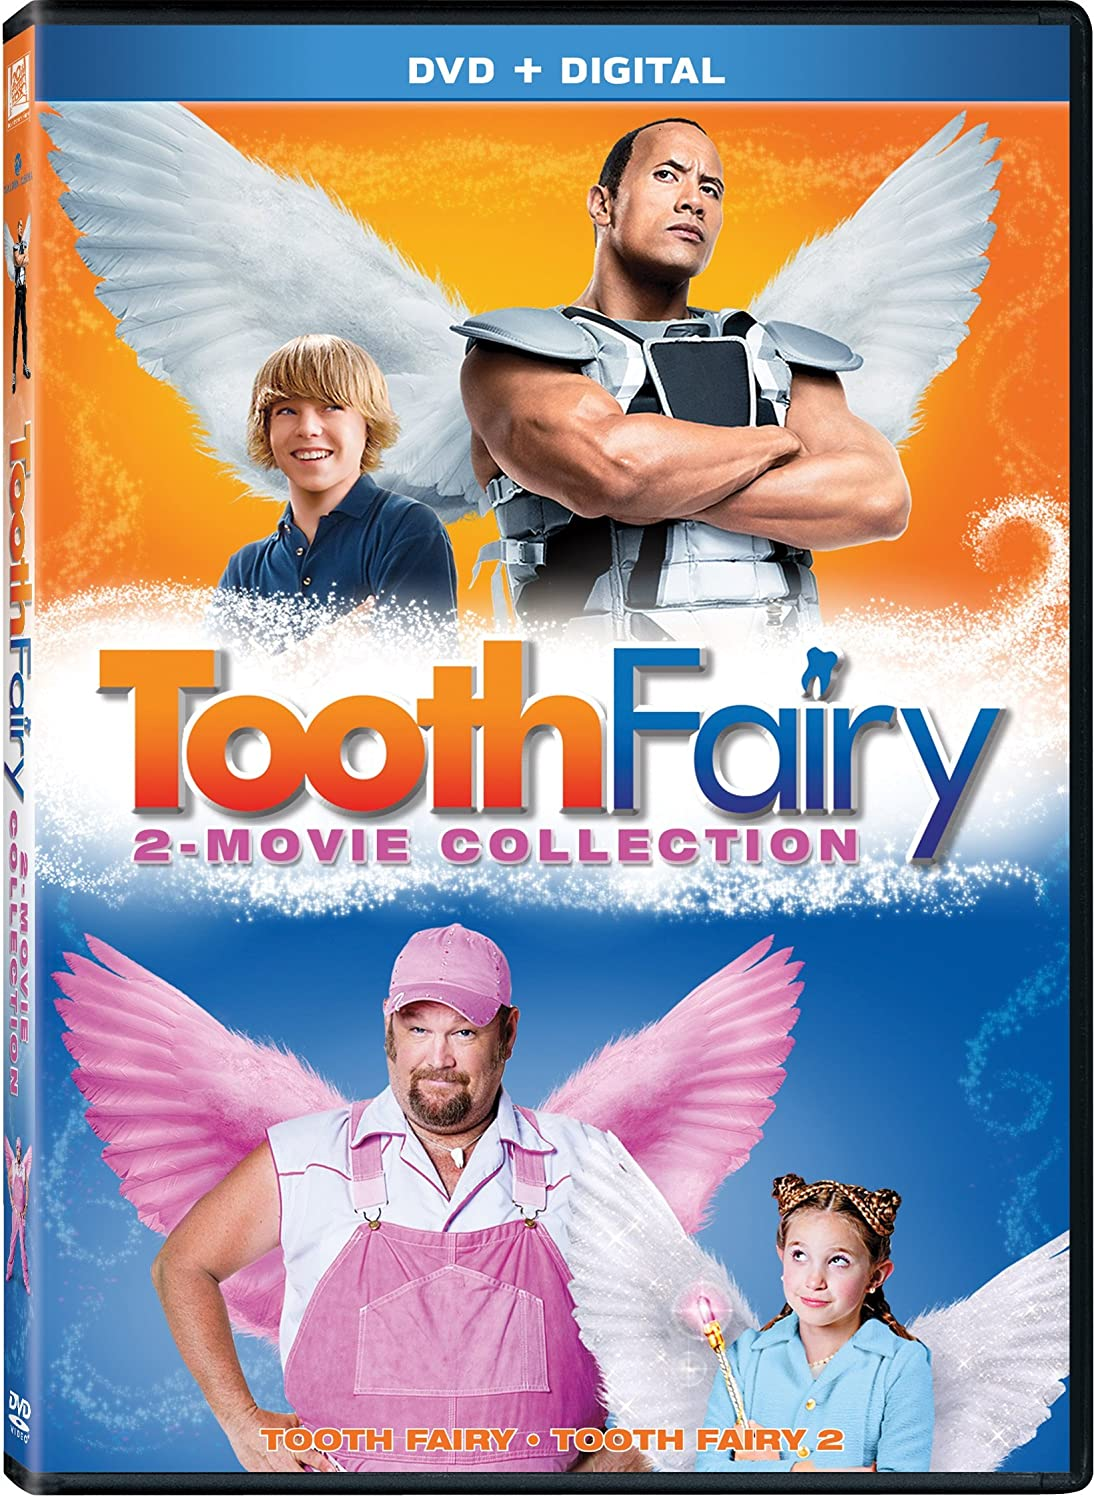 tooth fairy actor